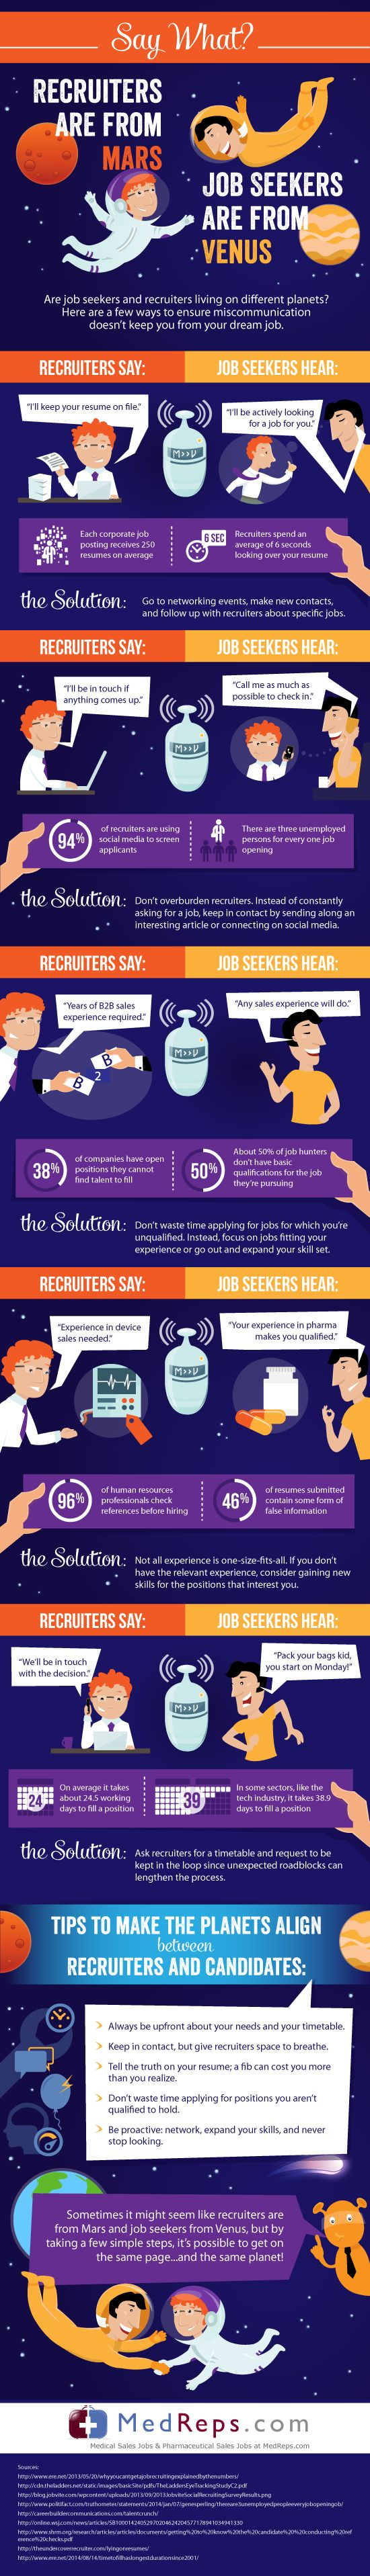 best ideas about s job description part time here s the problem you know you ve got job openings to fill and